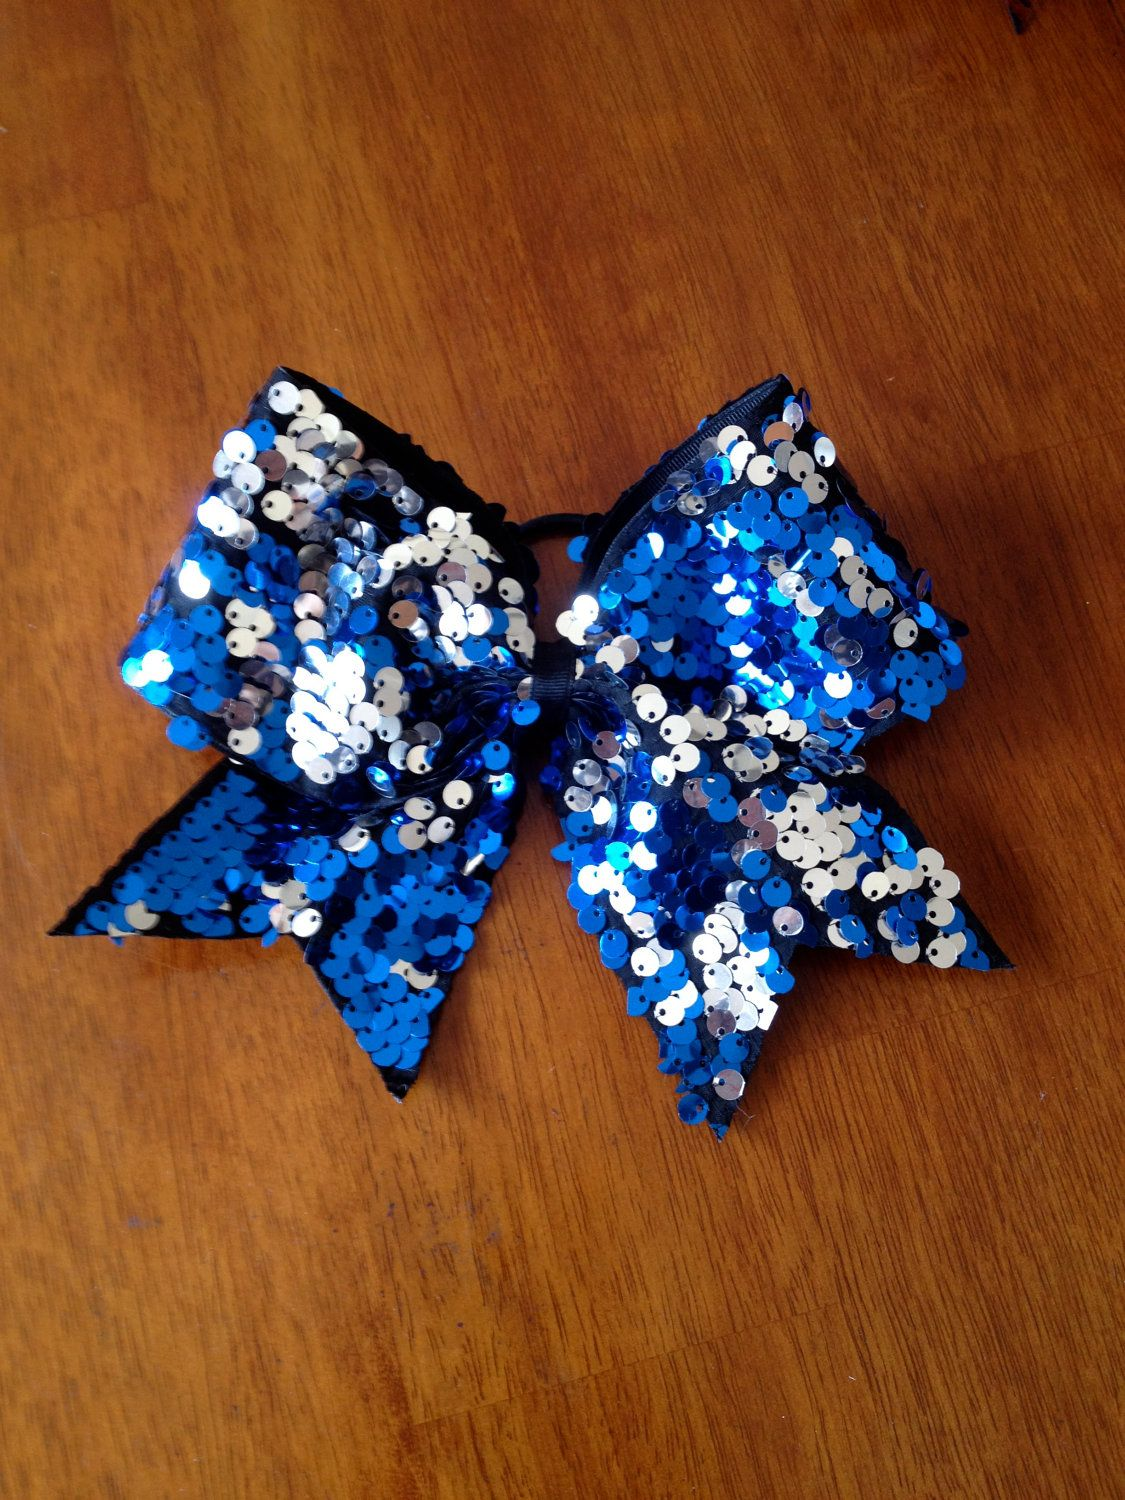 ef0a443a9a Royal and Silver Sequins Cheer Bow.  20.00